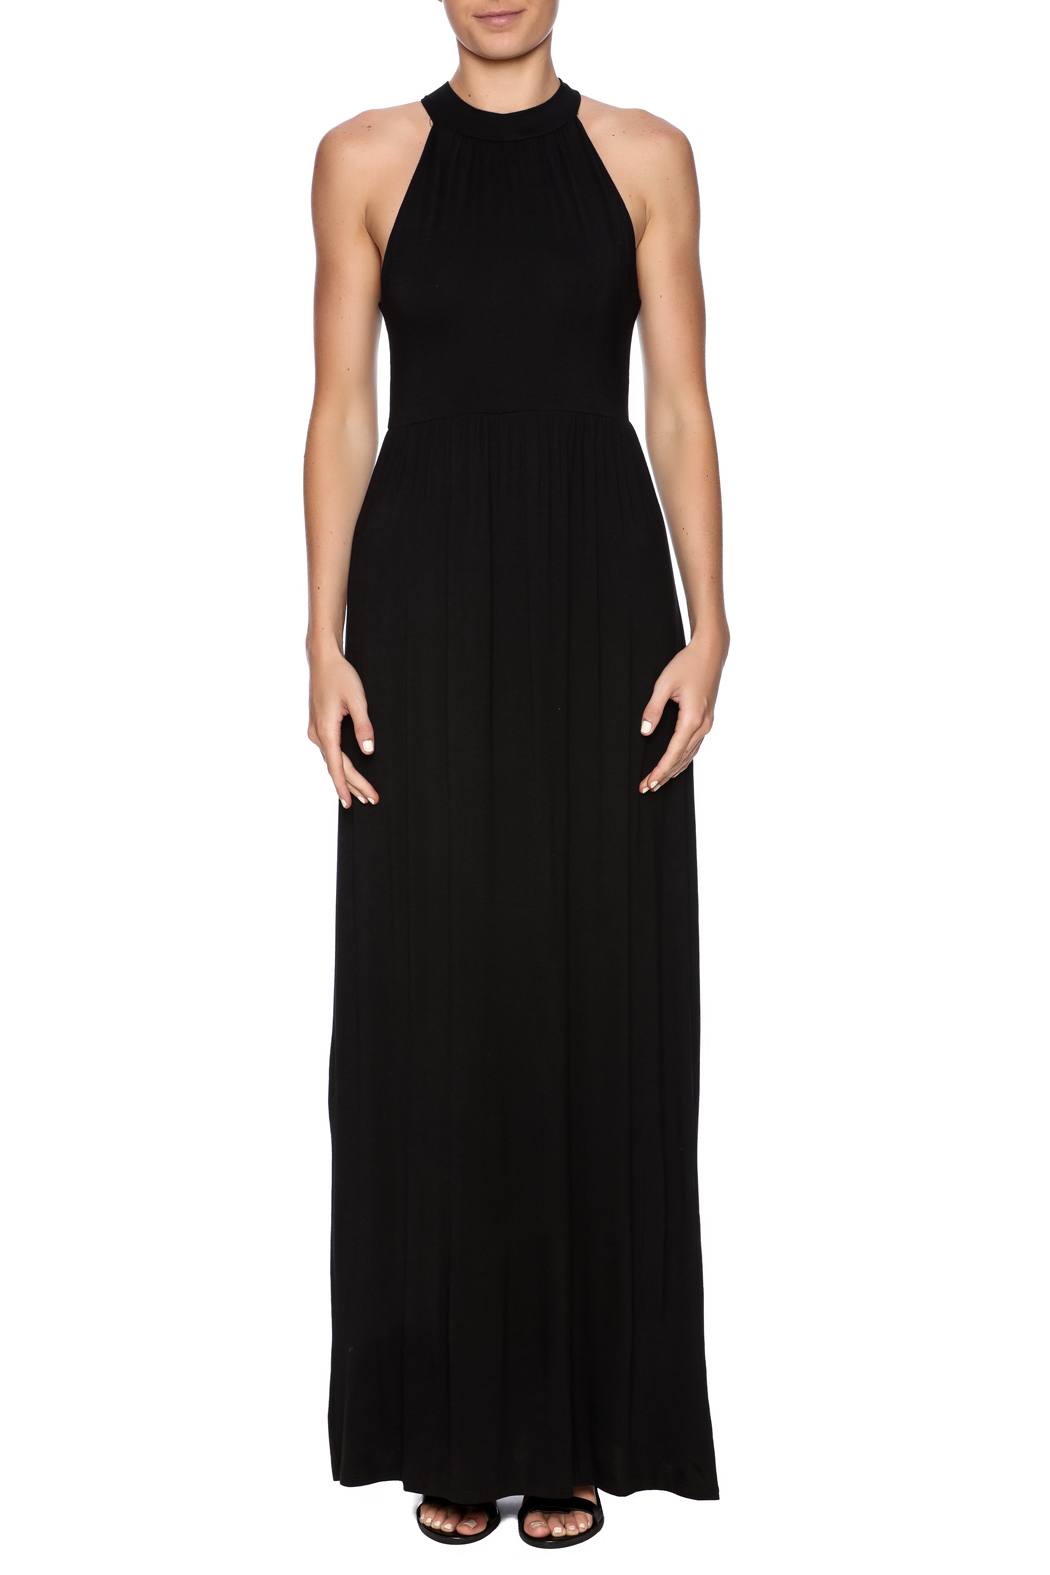 Bellamie Sophia Maxi Dress - Front Cropped Image